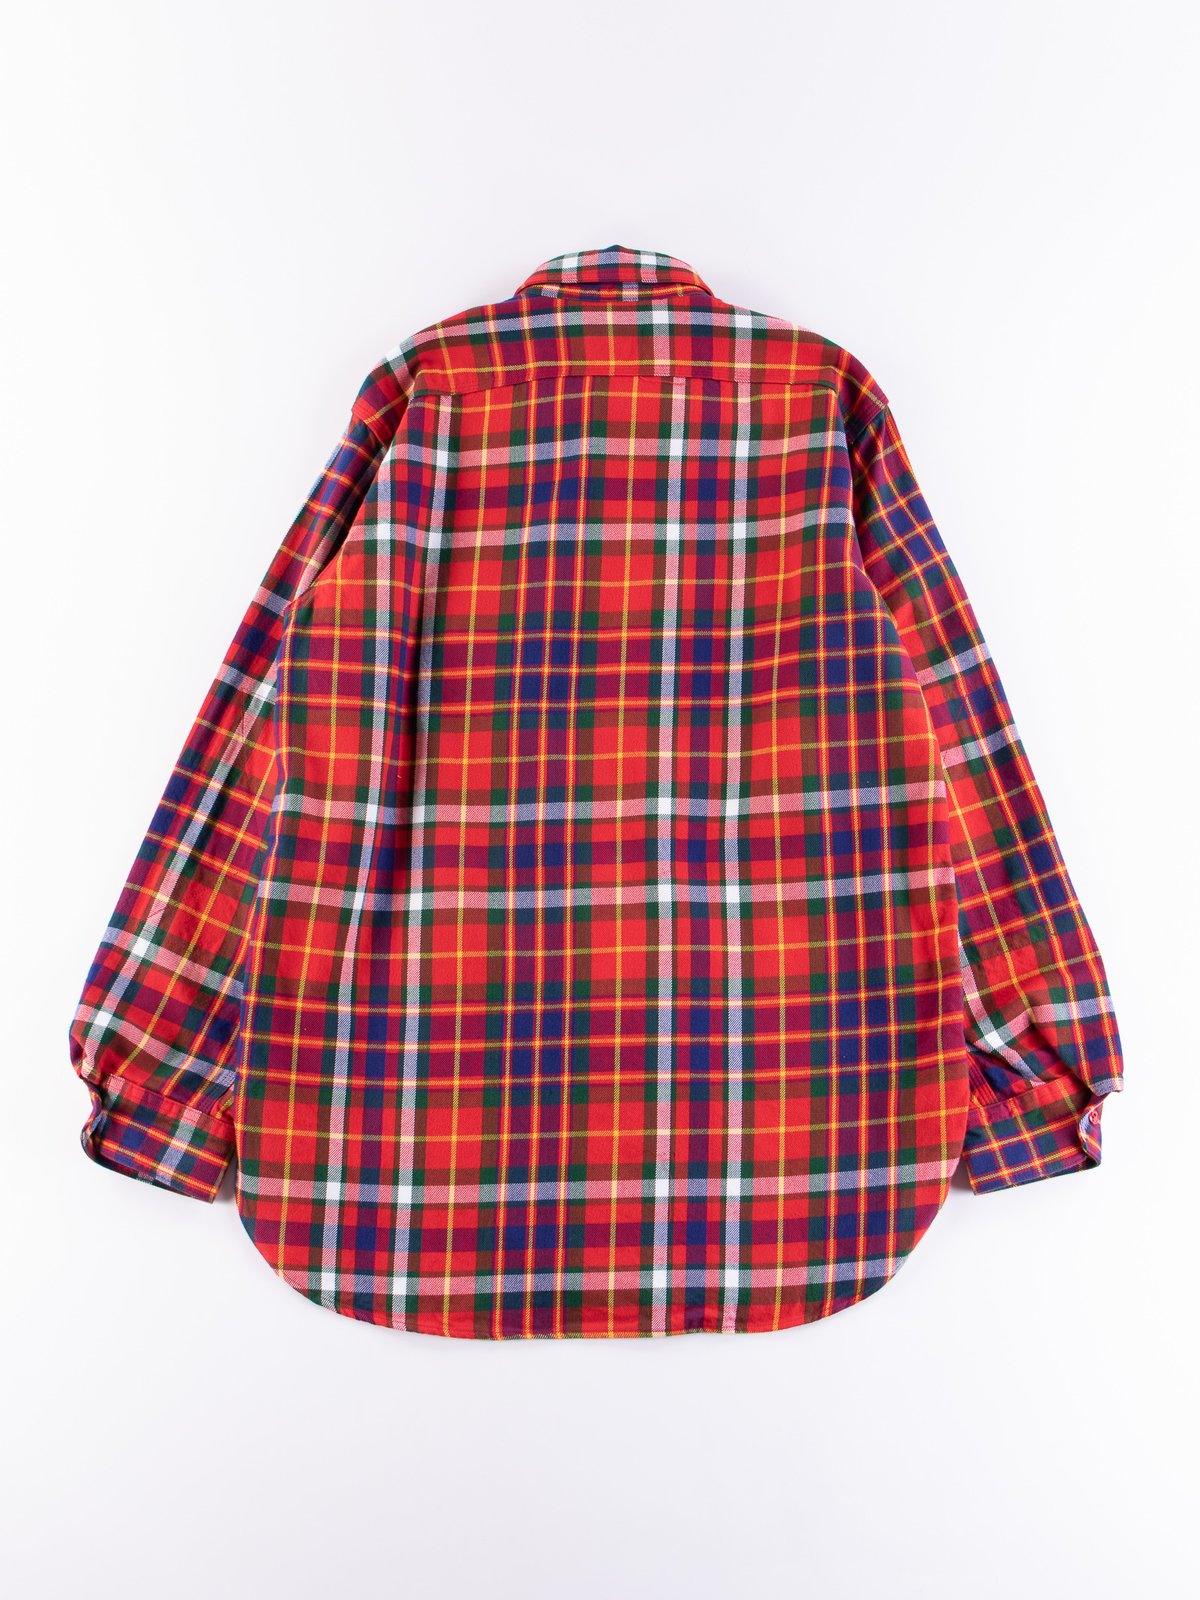 Red/Green/Yellow Cotton Twill Plaid Work Shirt - Image 5